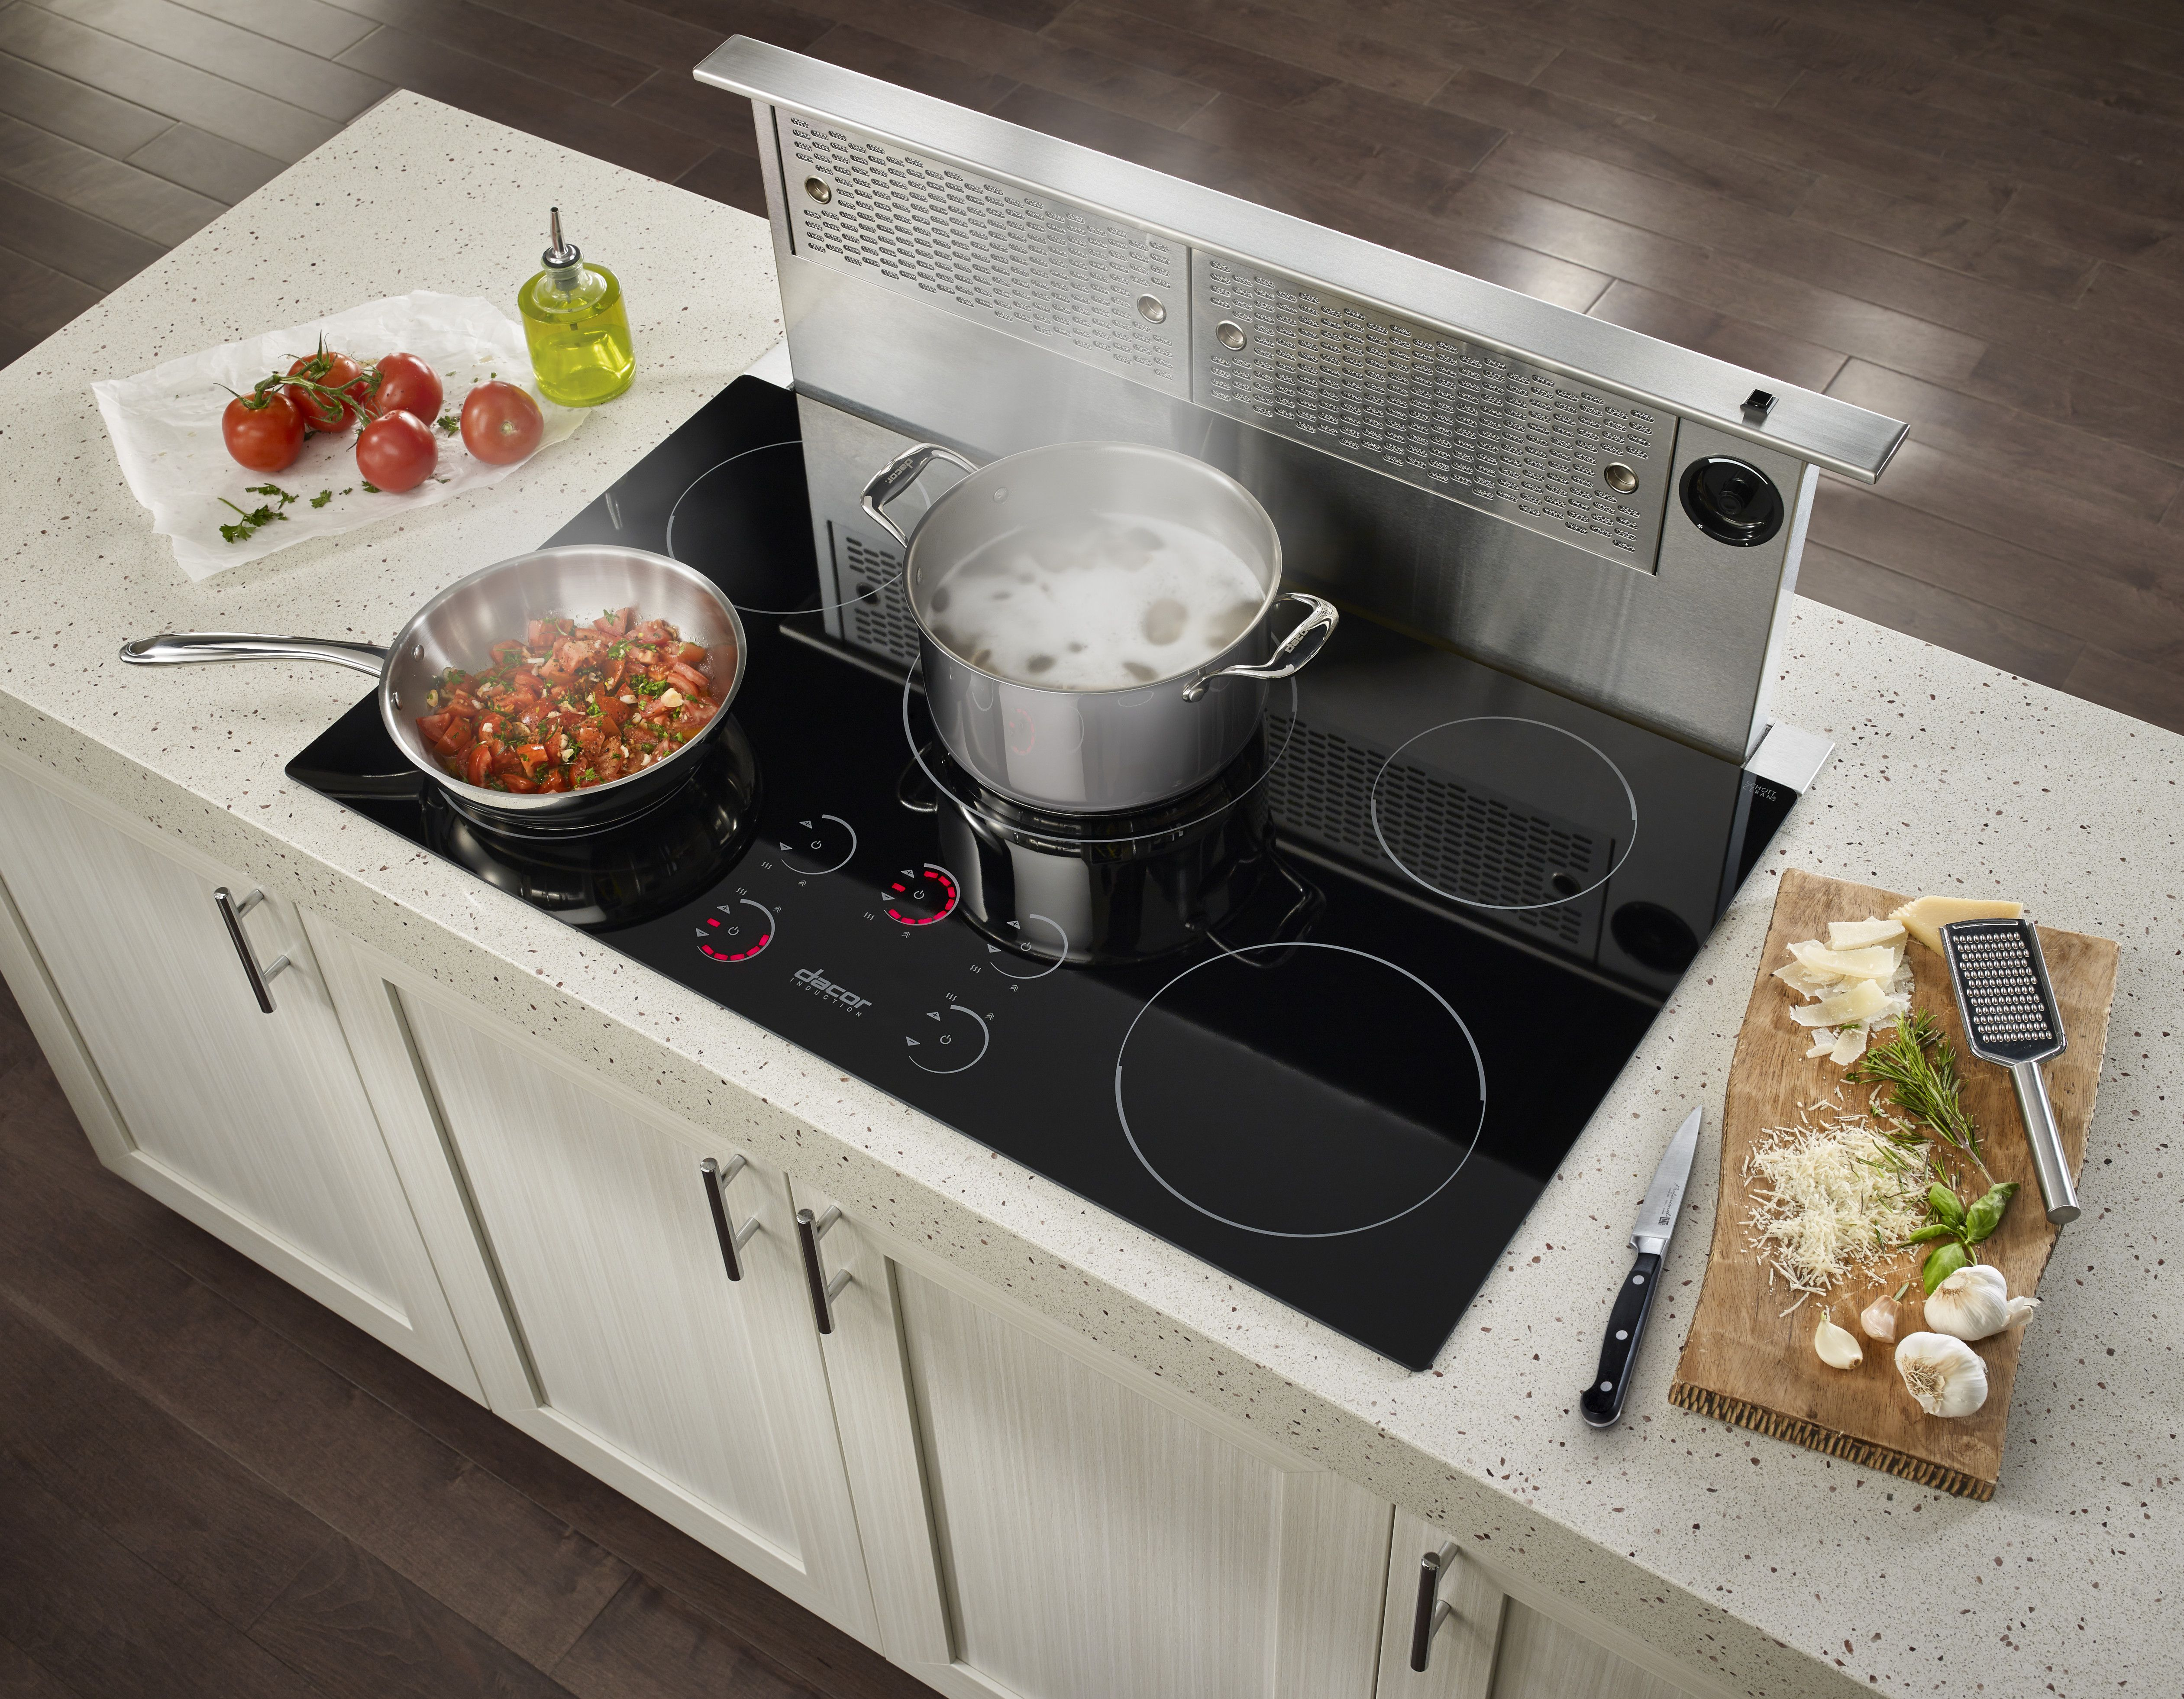 The Renaissance Induction Cooktops Outperform Both Standard